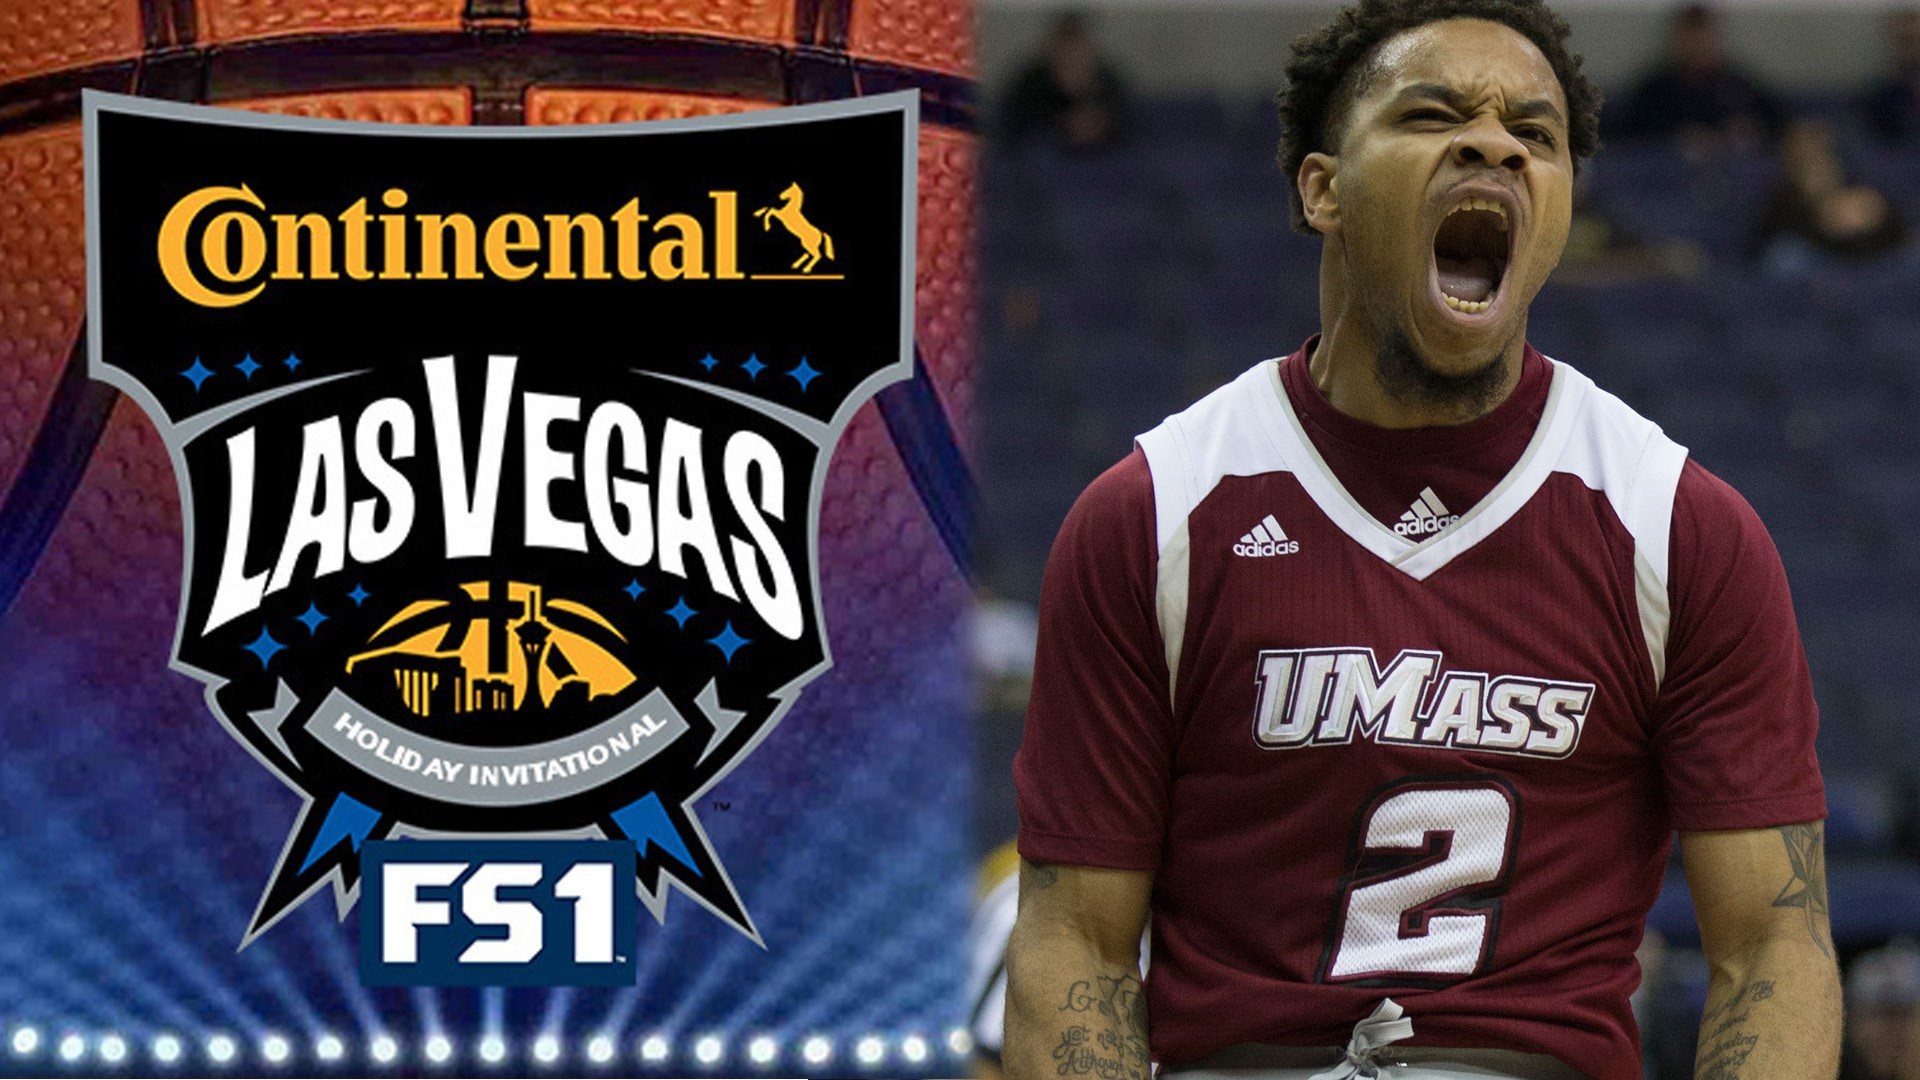 Garage Games Invitational Continental Tire Las Vegas Holiday Invitational Previews